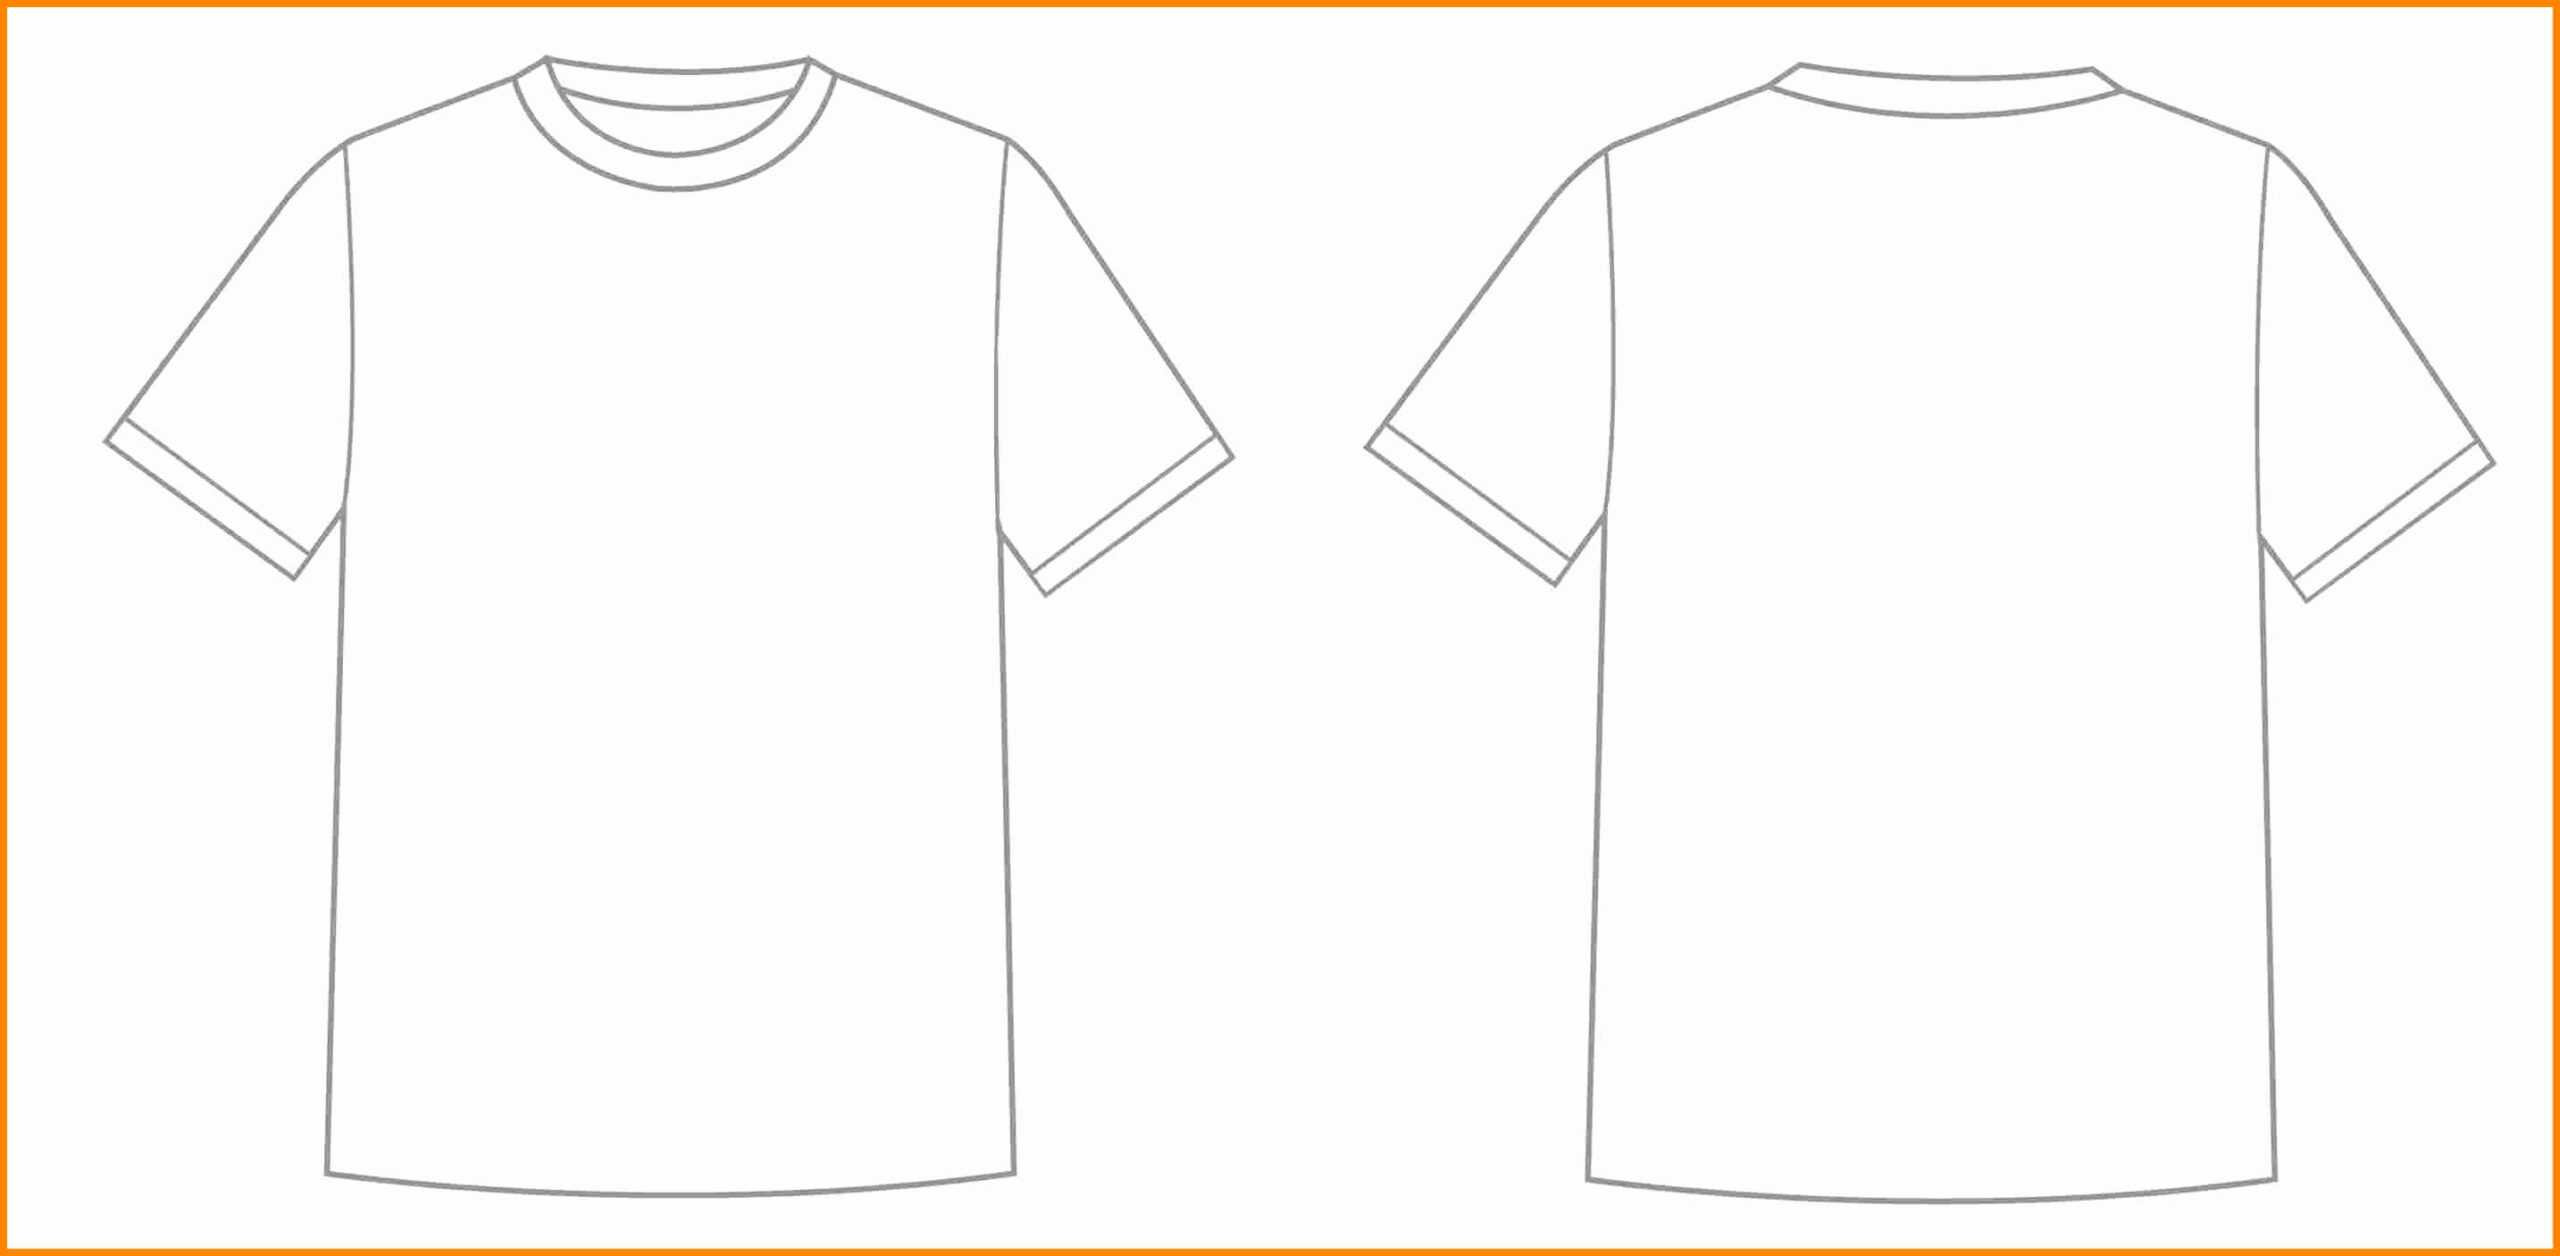 Printable Blank Tshirt Template – C Punkt With Regard To Blank Tshirt Template Printable